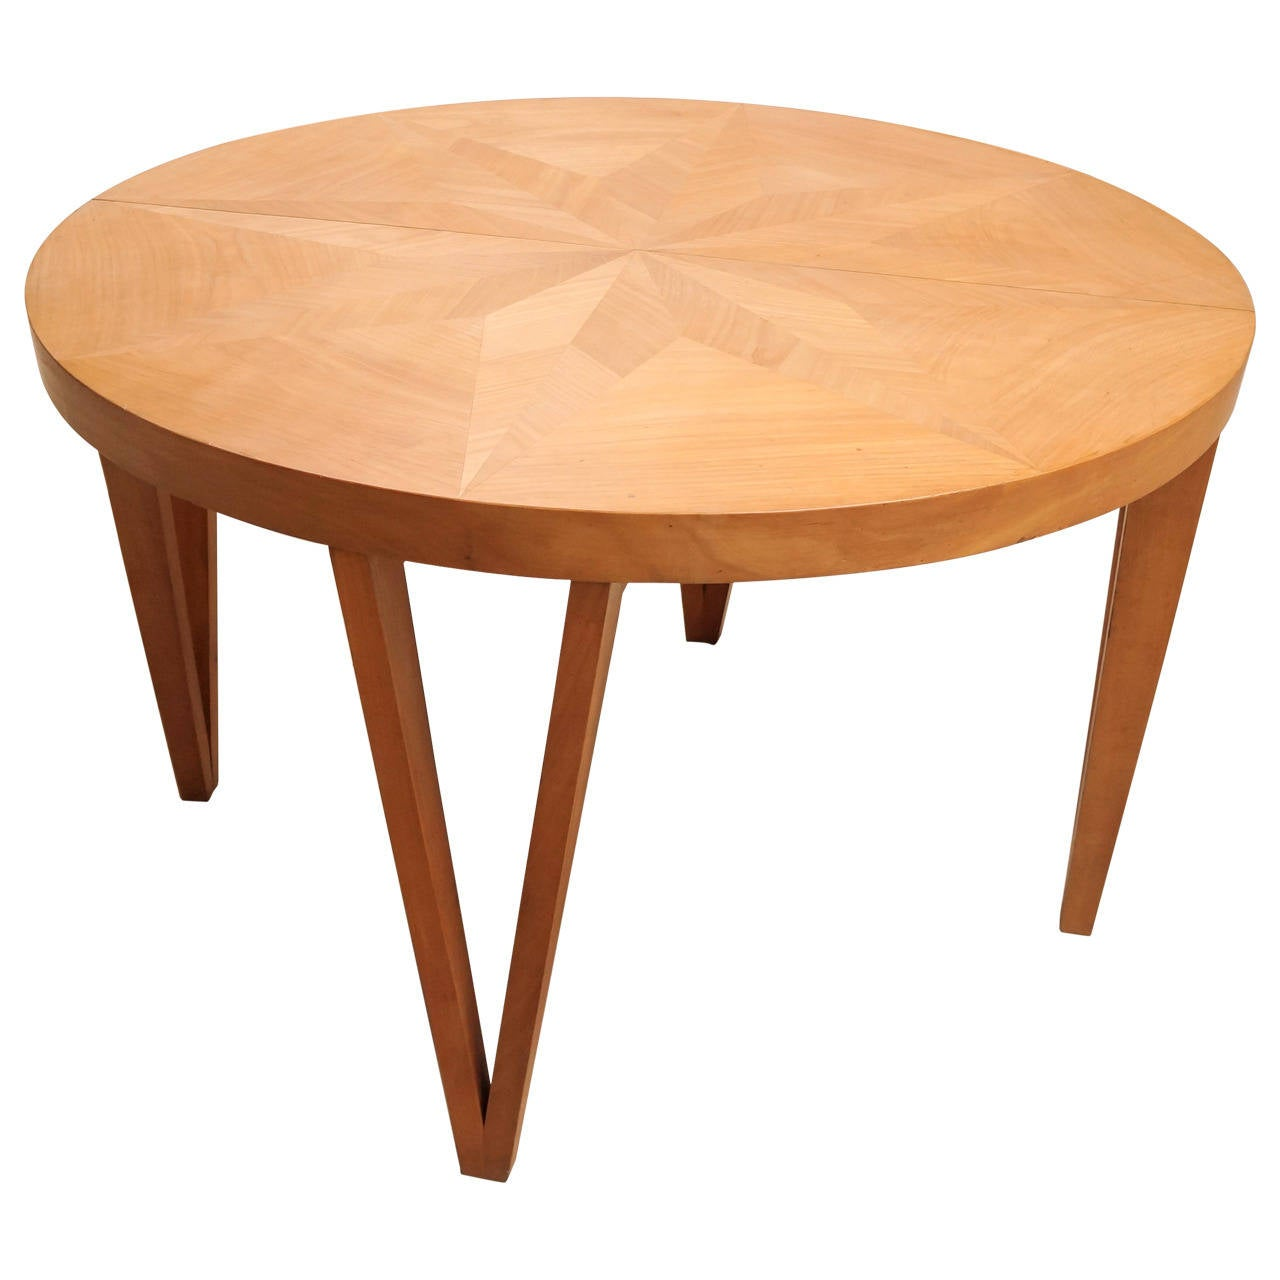 Sycamore Round Dining Table For Sale At 1stdibs